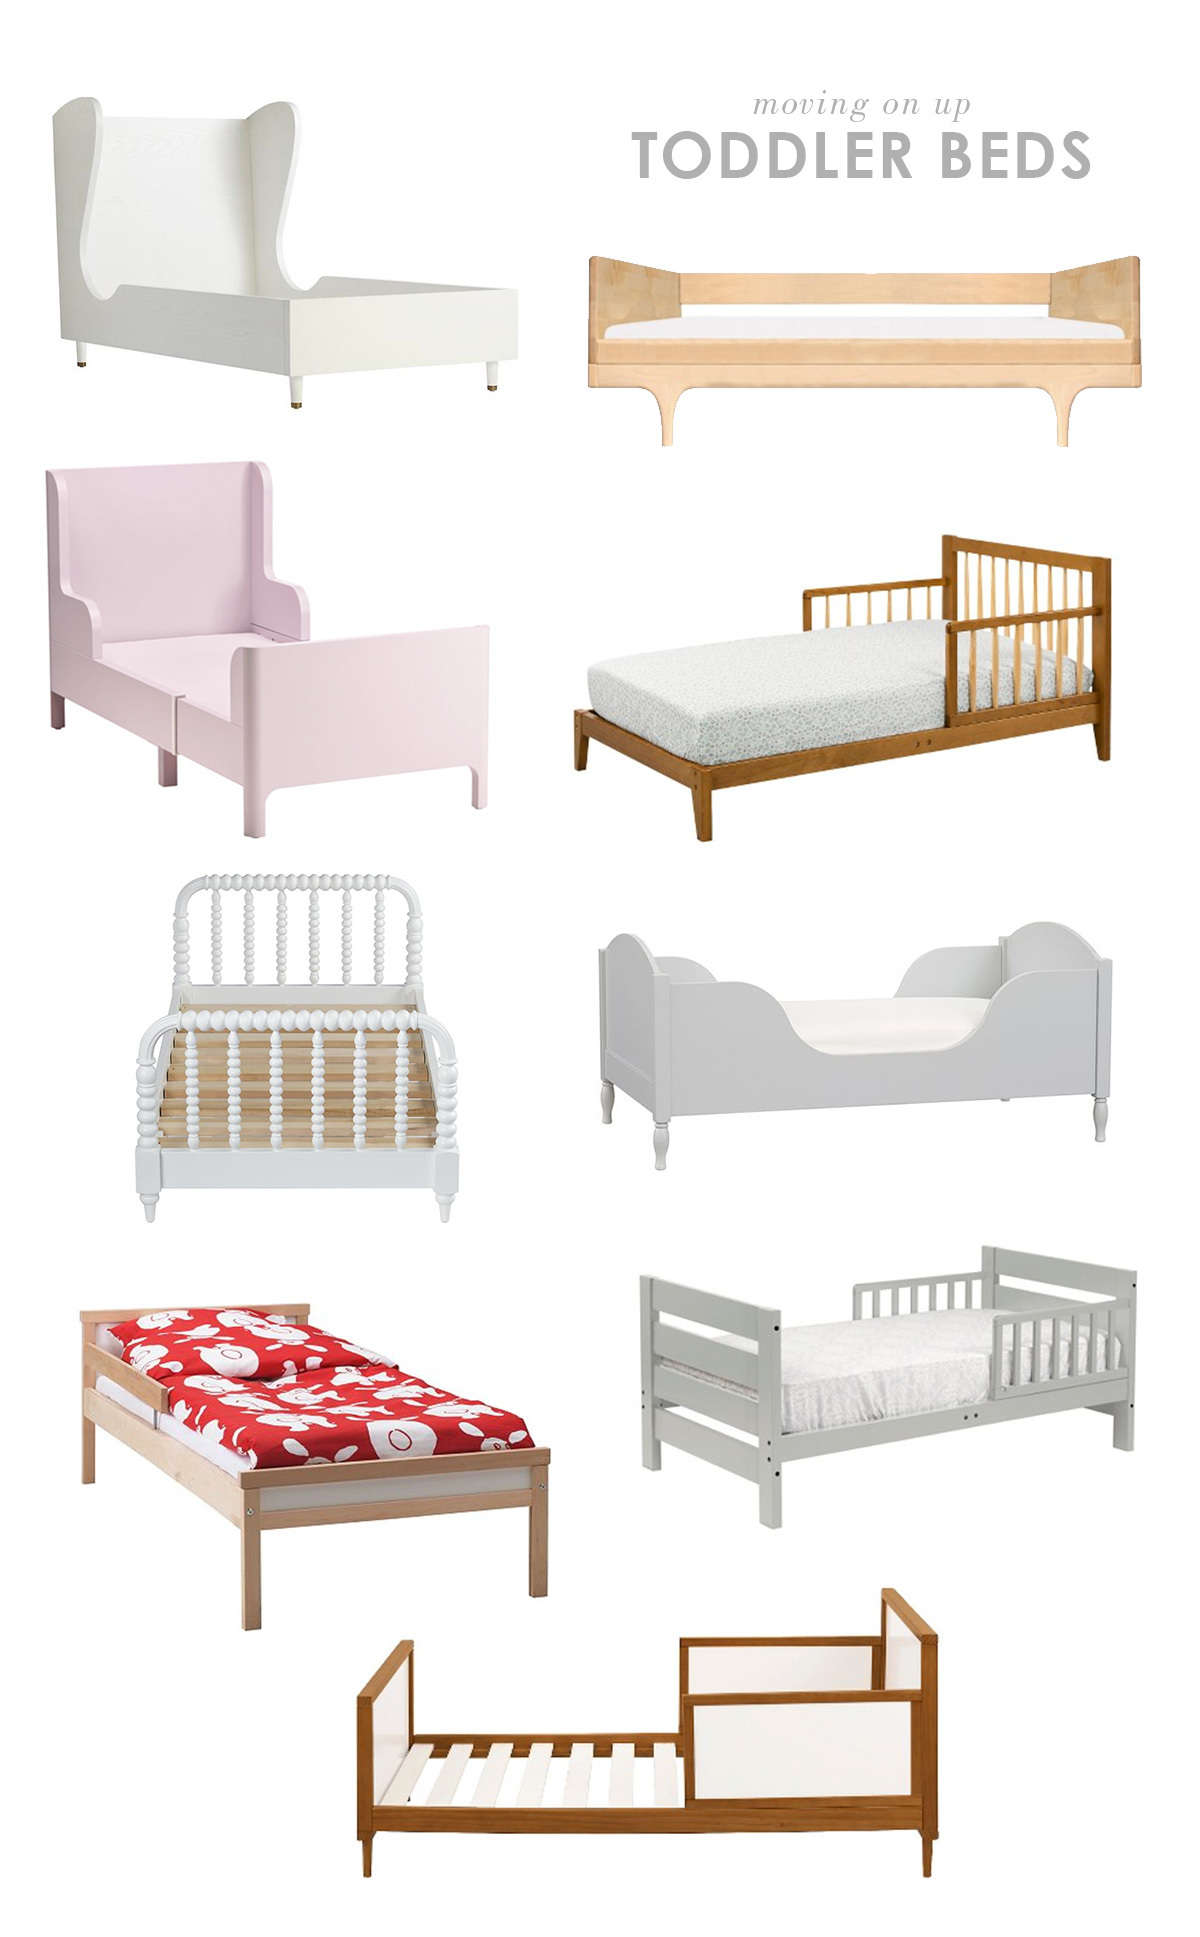 toddler bed ideas